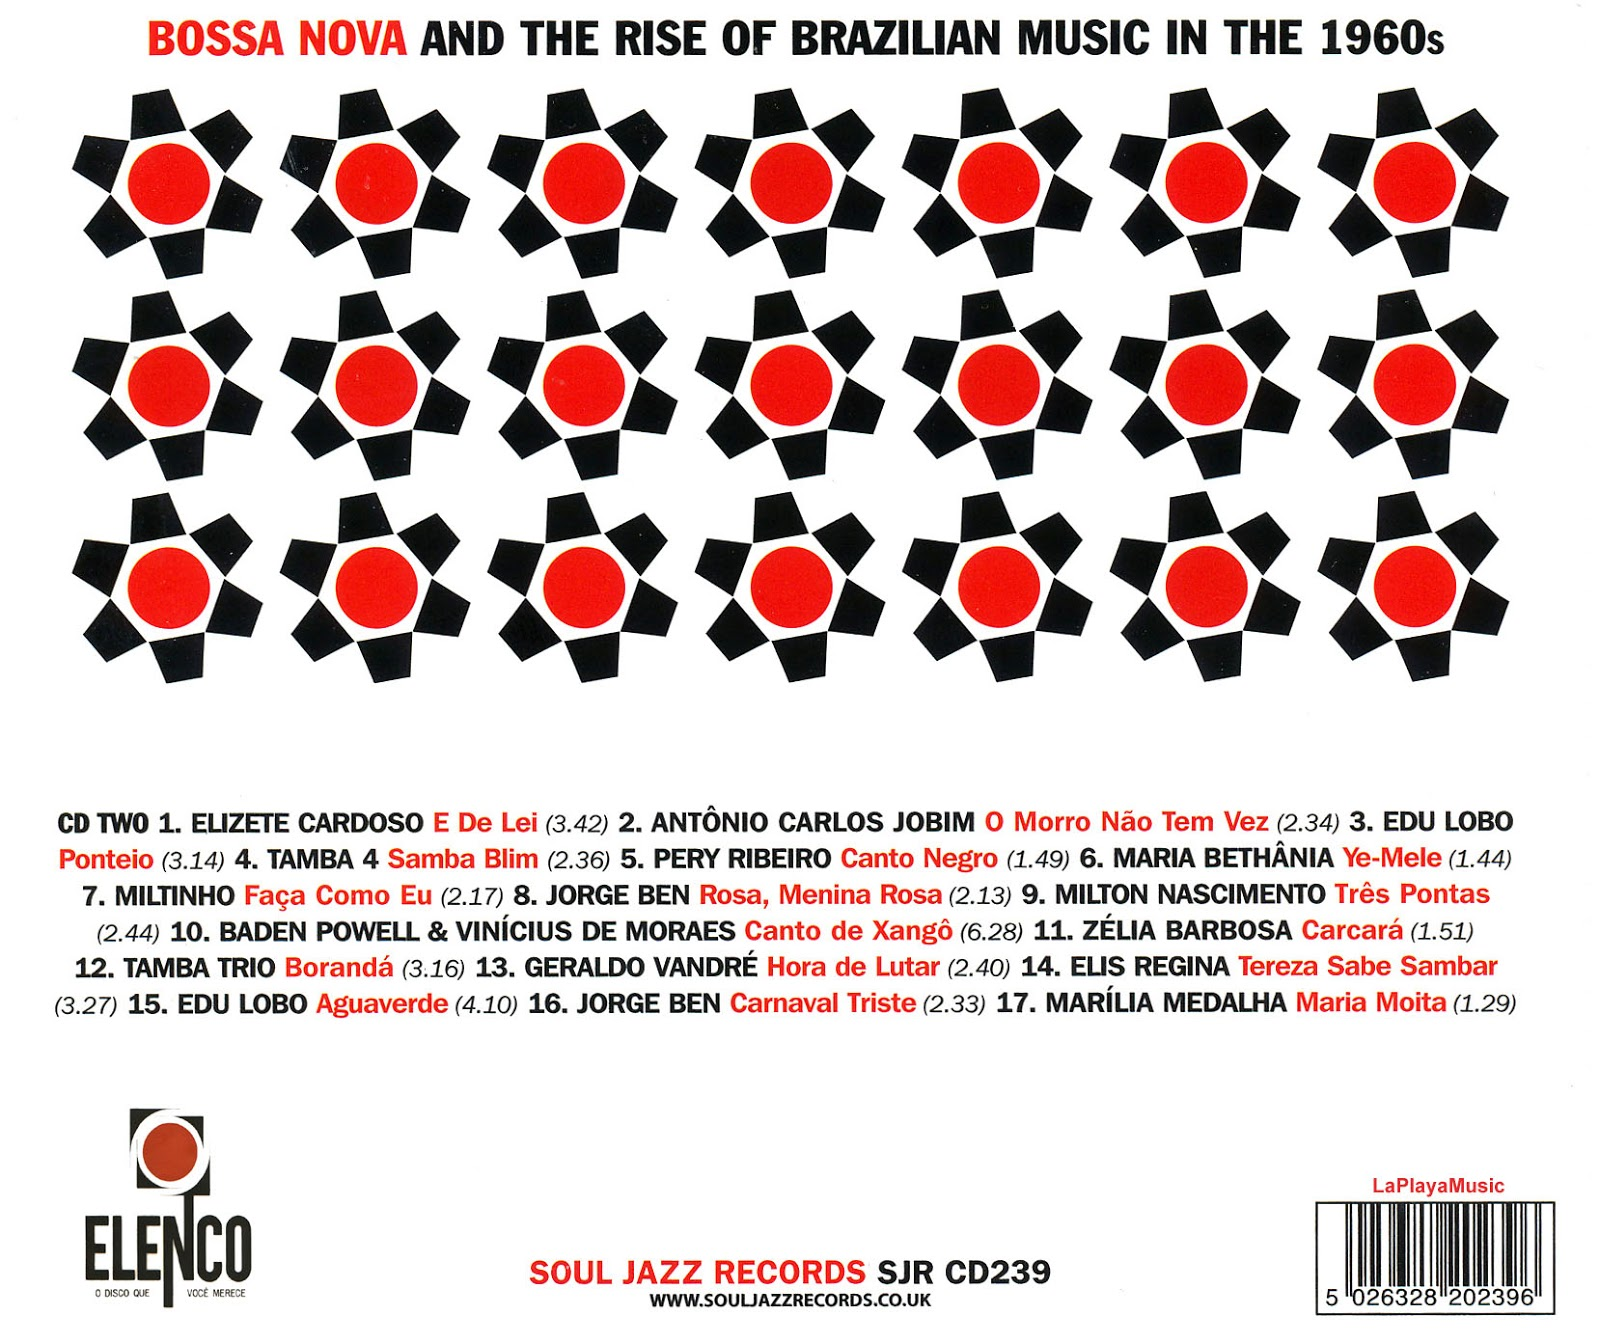 LA PLAYA MUSIC - OLDIES: BOSSA NOVA AND RISE OF BRAZILIAN